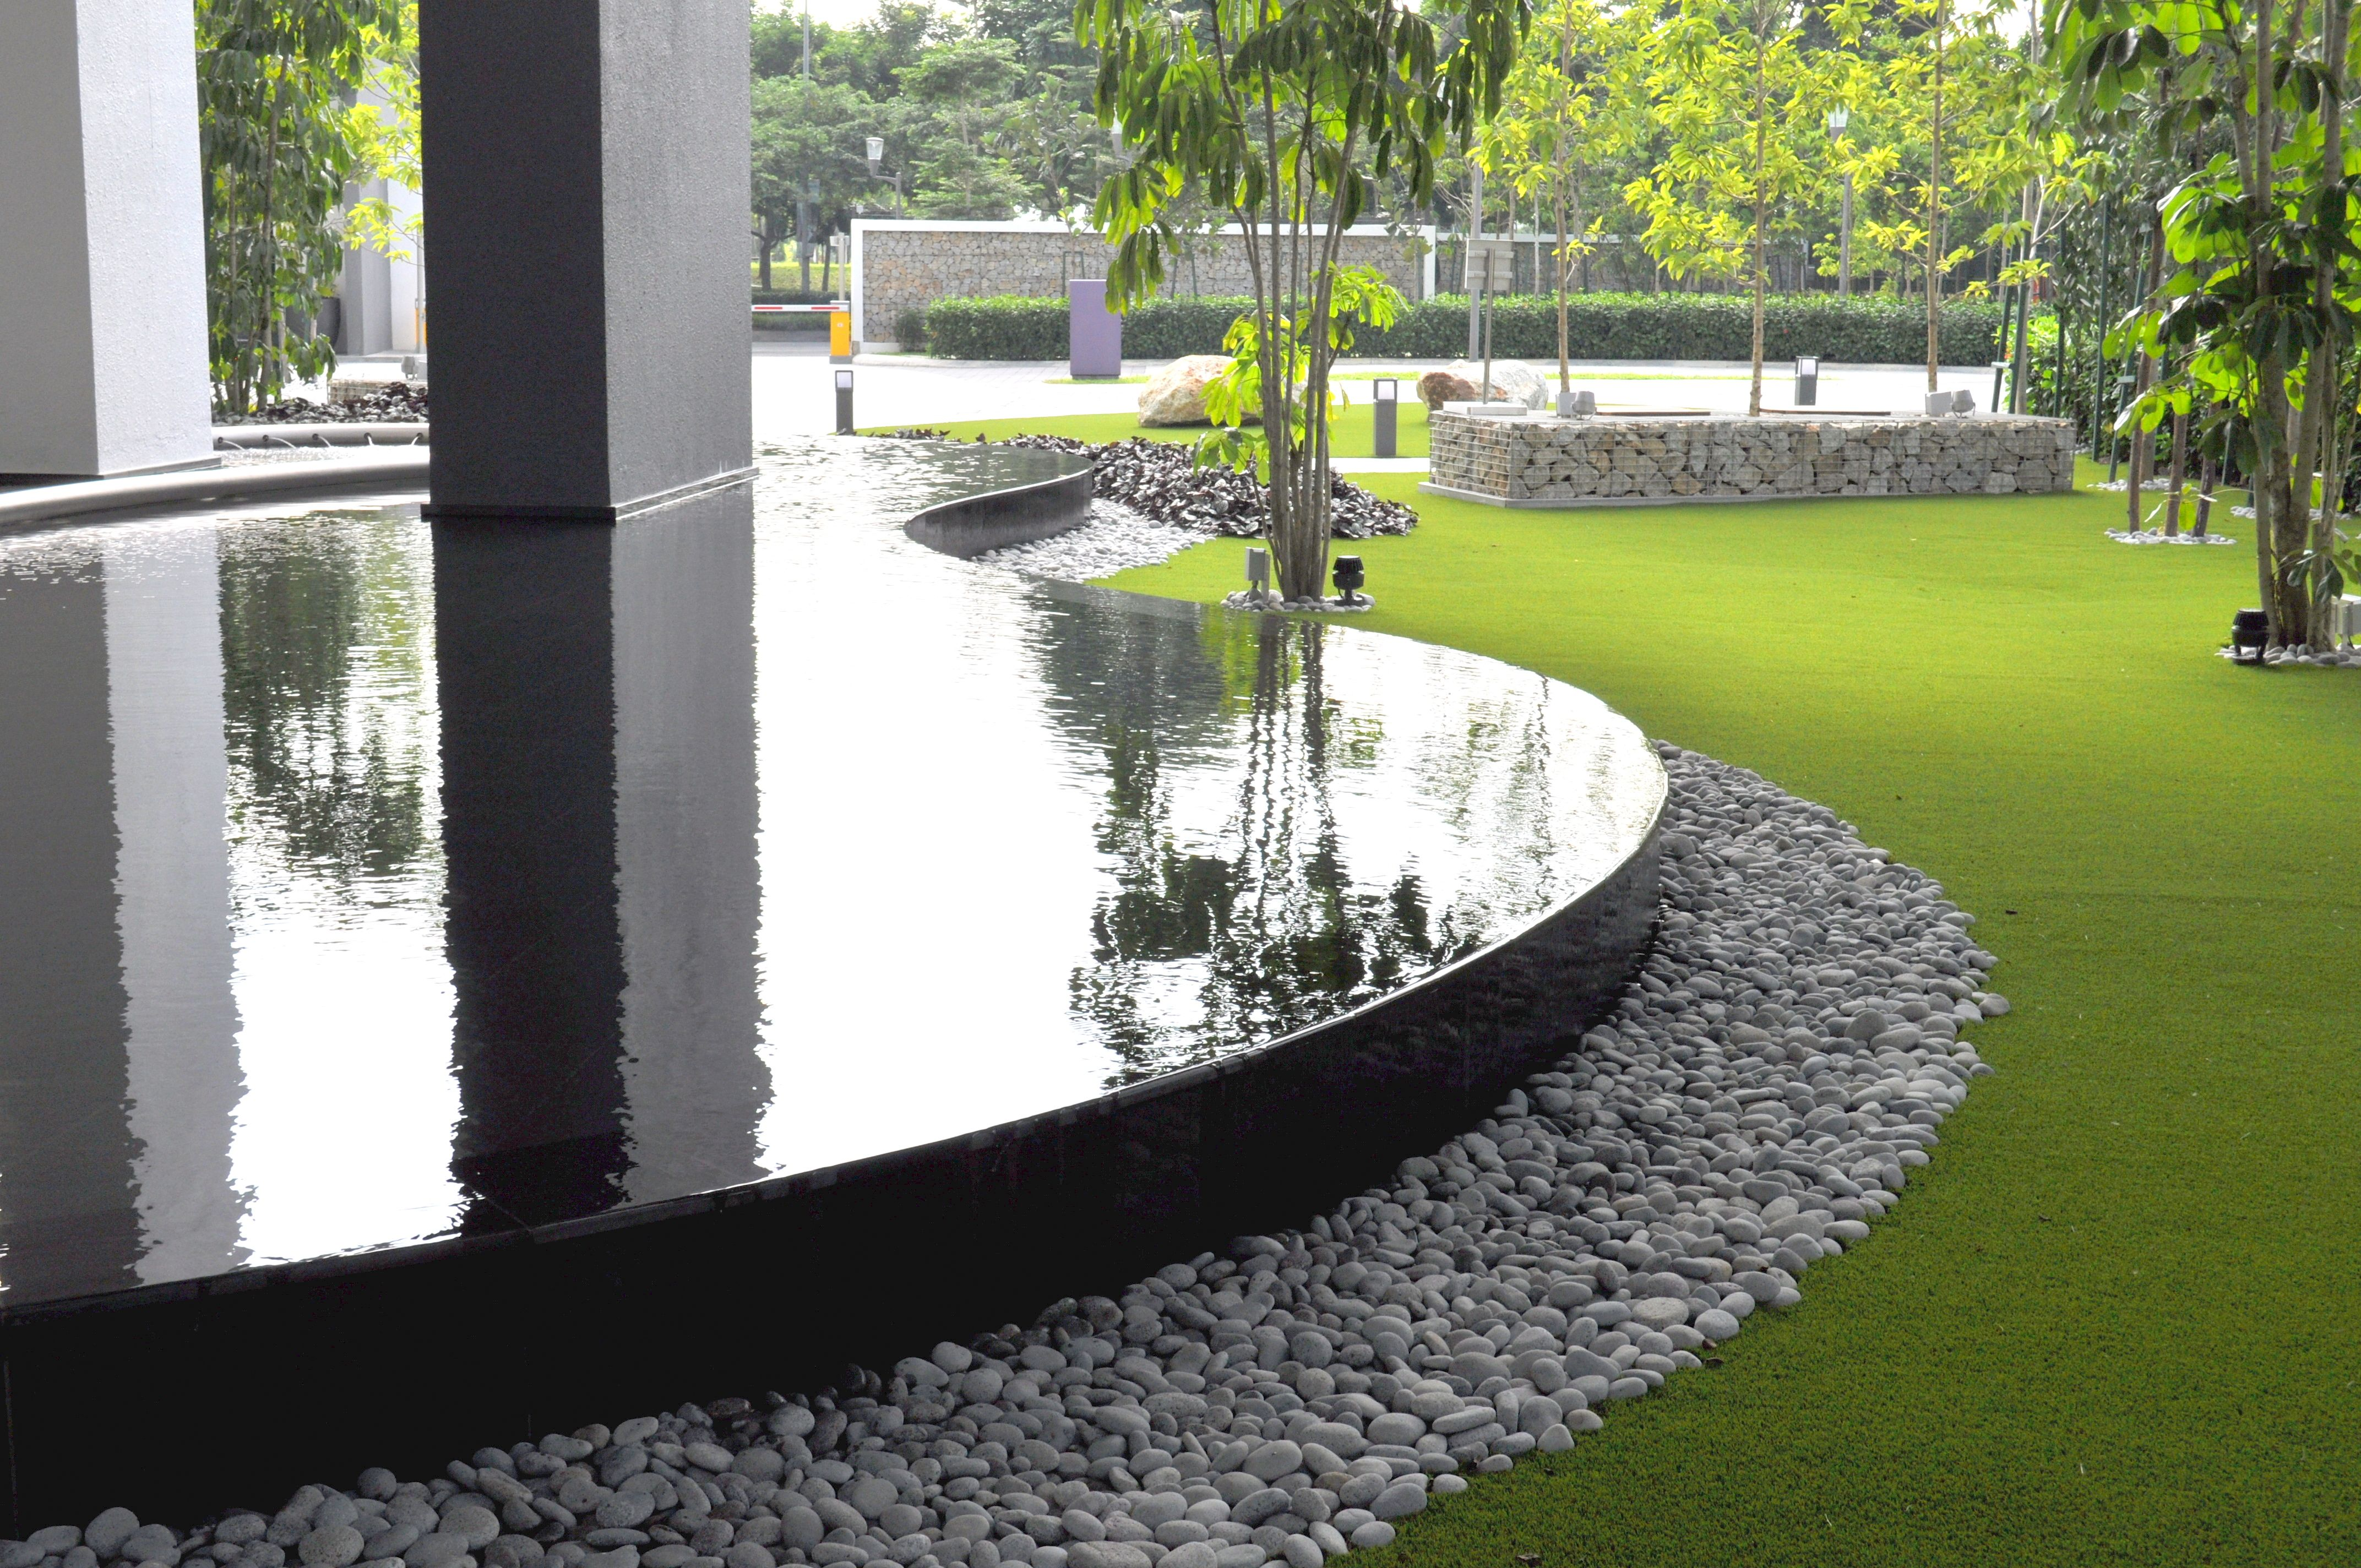 A recent project we completed with our partner Praxis Design Sdn Bhd for our long term client Desa Park City. The variety in materials, colours and textures create an overall design that is a pleasure to the eyes and mind. For this project we used Royal Grass Exclusive 3.0, the latest generation artificial grass. #artificalgrass #artificialgrassmalaysia #royalgrass #landscapedesign #landscapearchitecture #design #malaysia